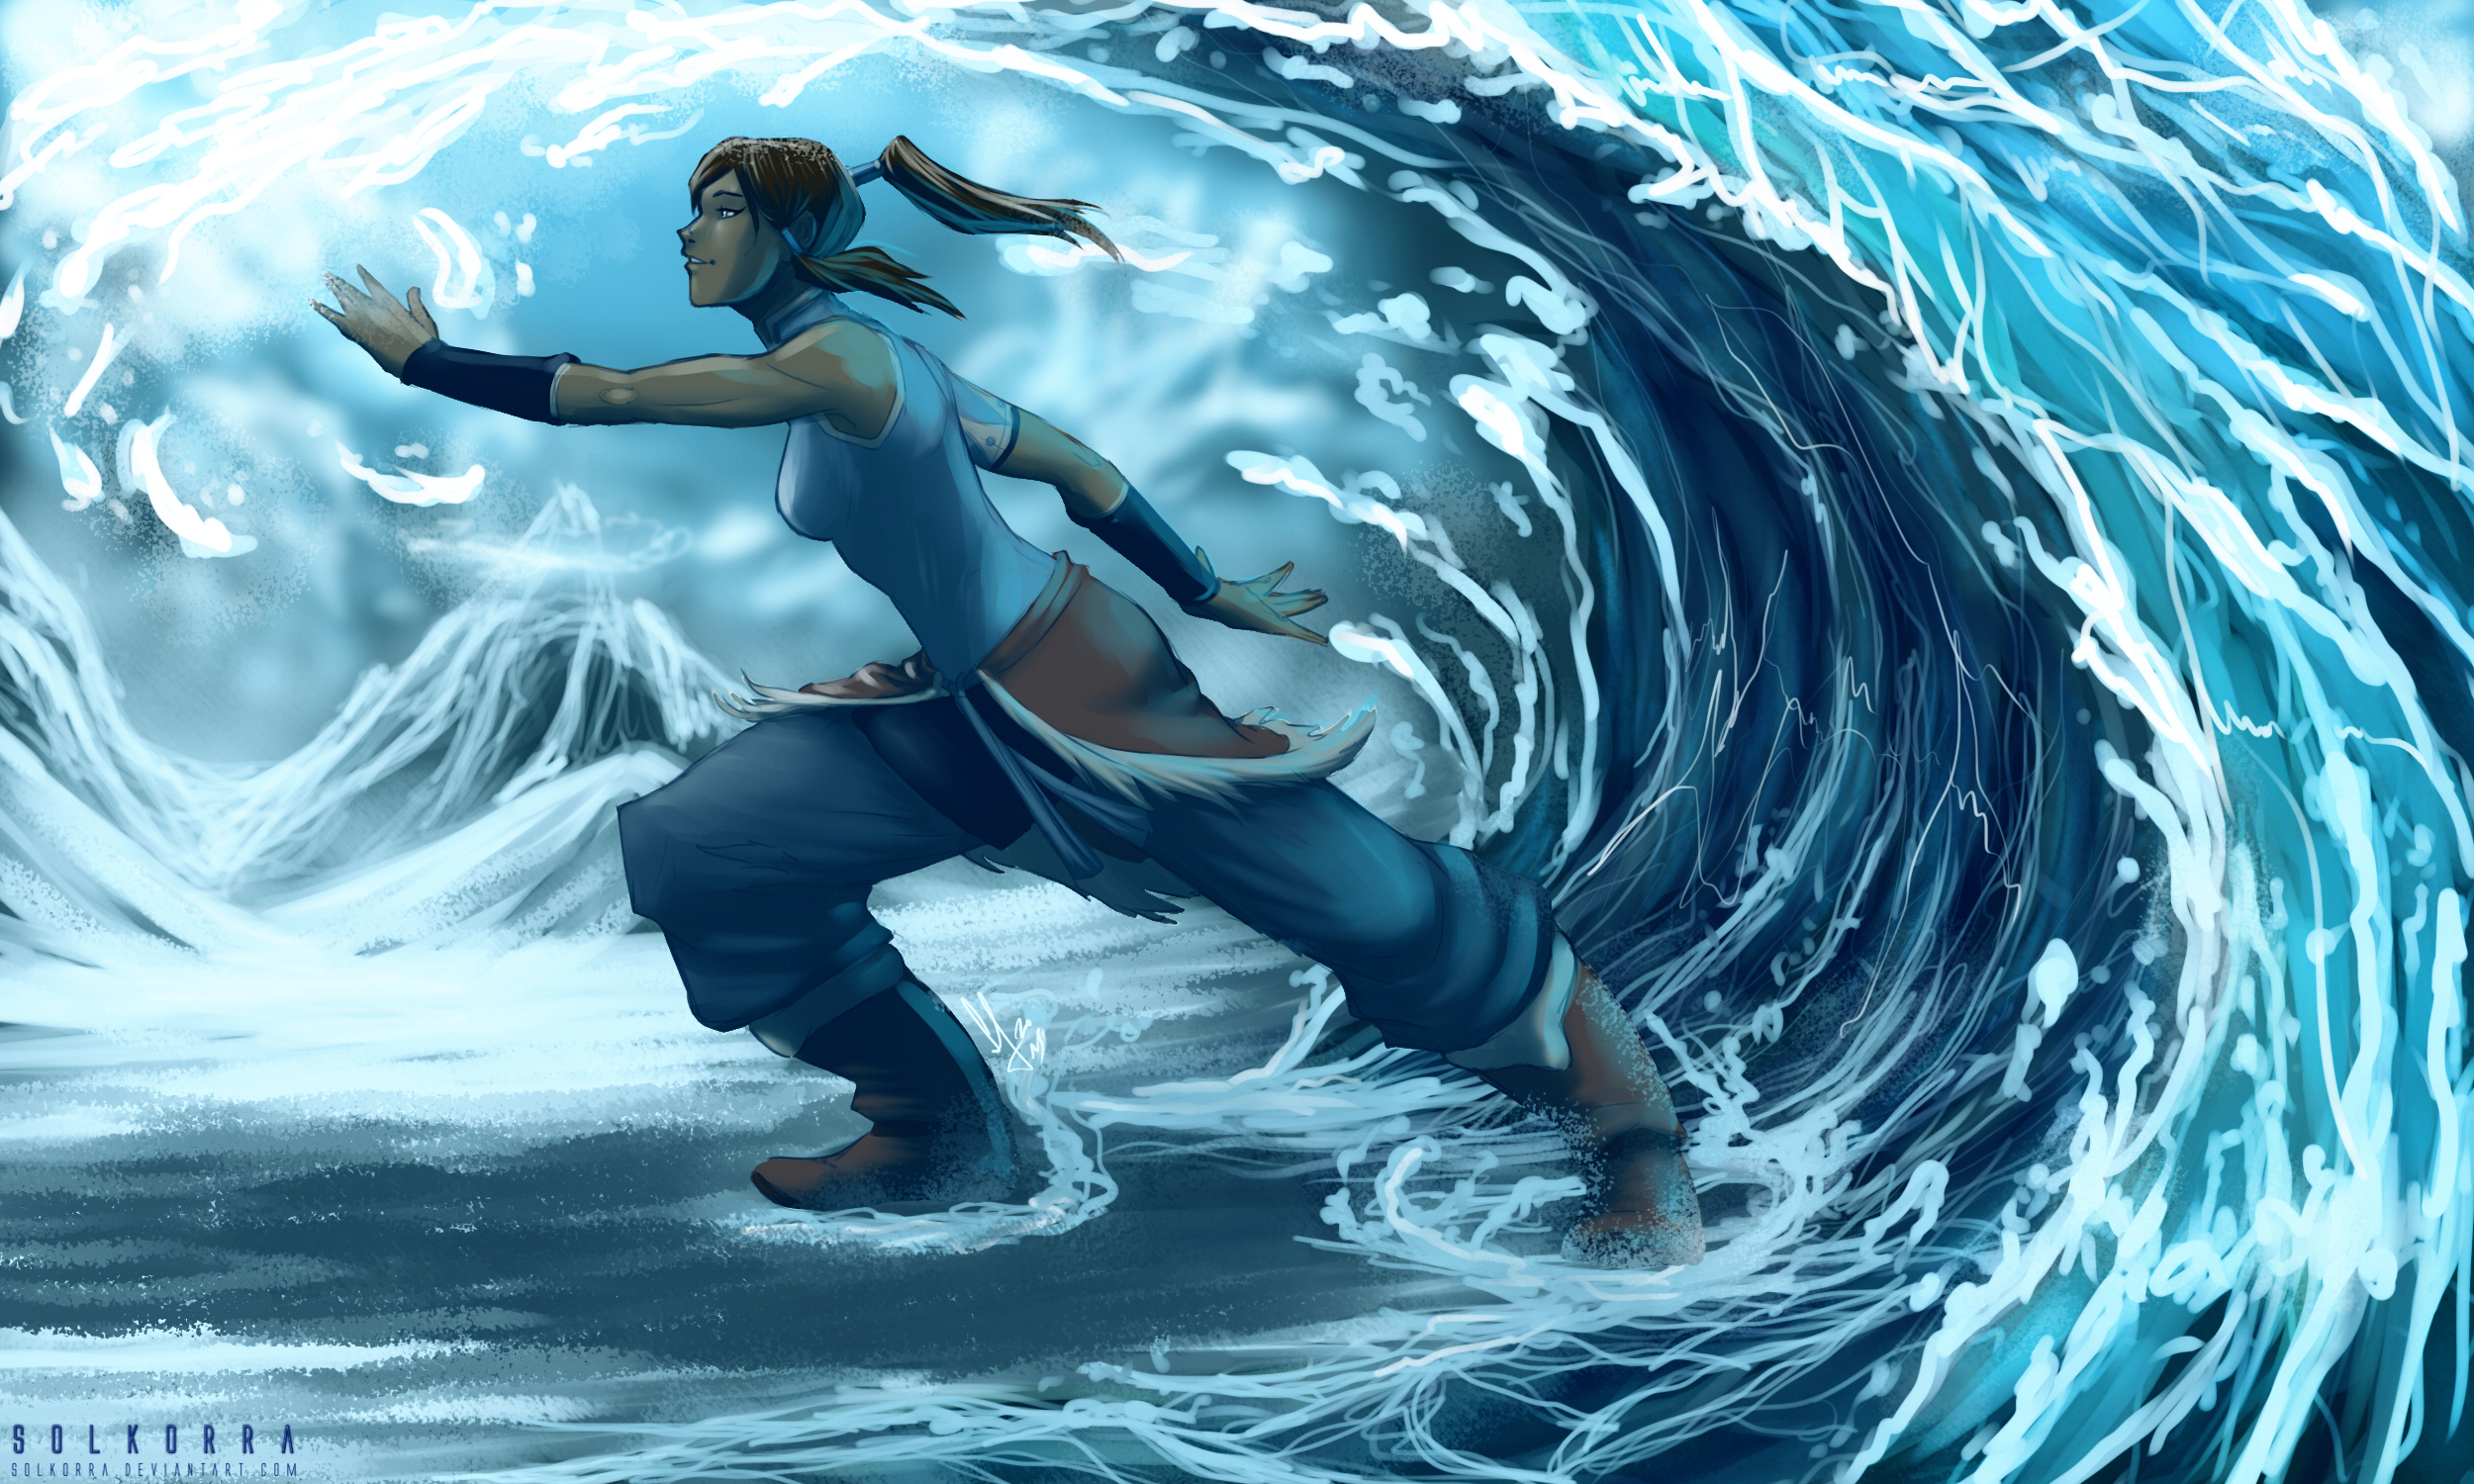 Avatar the legend of korra full hd wallpaper and background image anime avatar the legend of korra wallpaper voltagebd Images